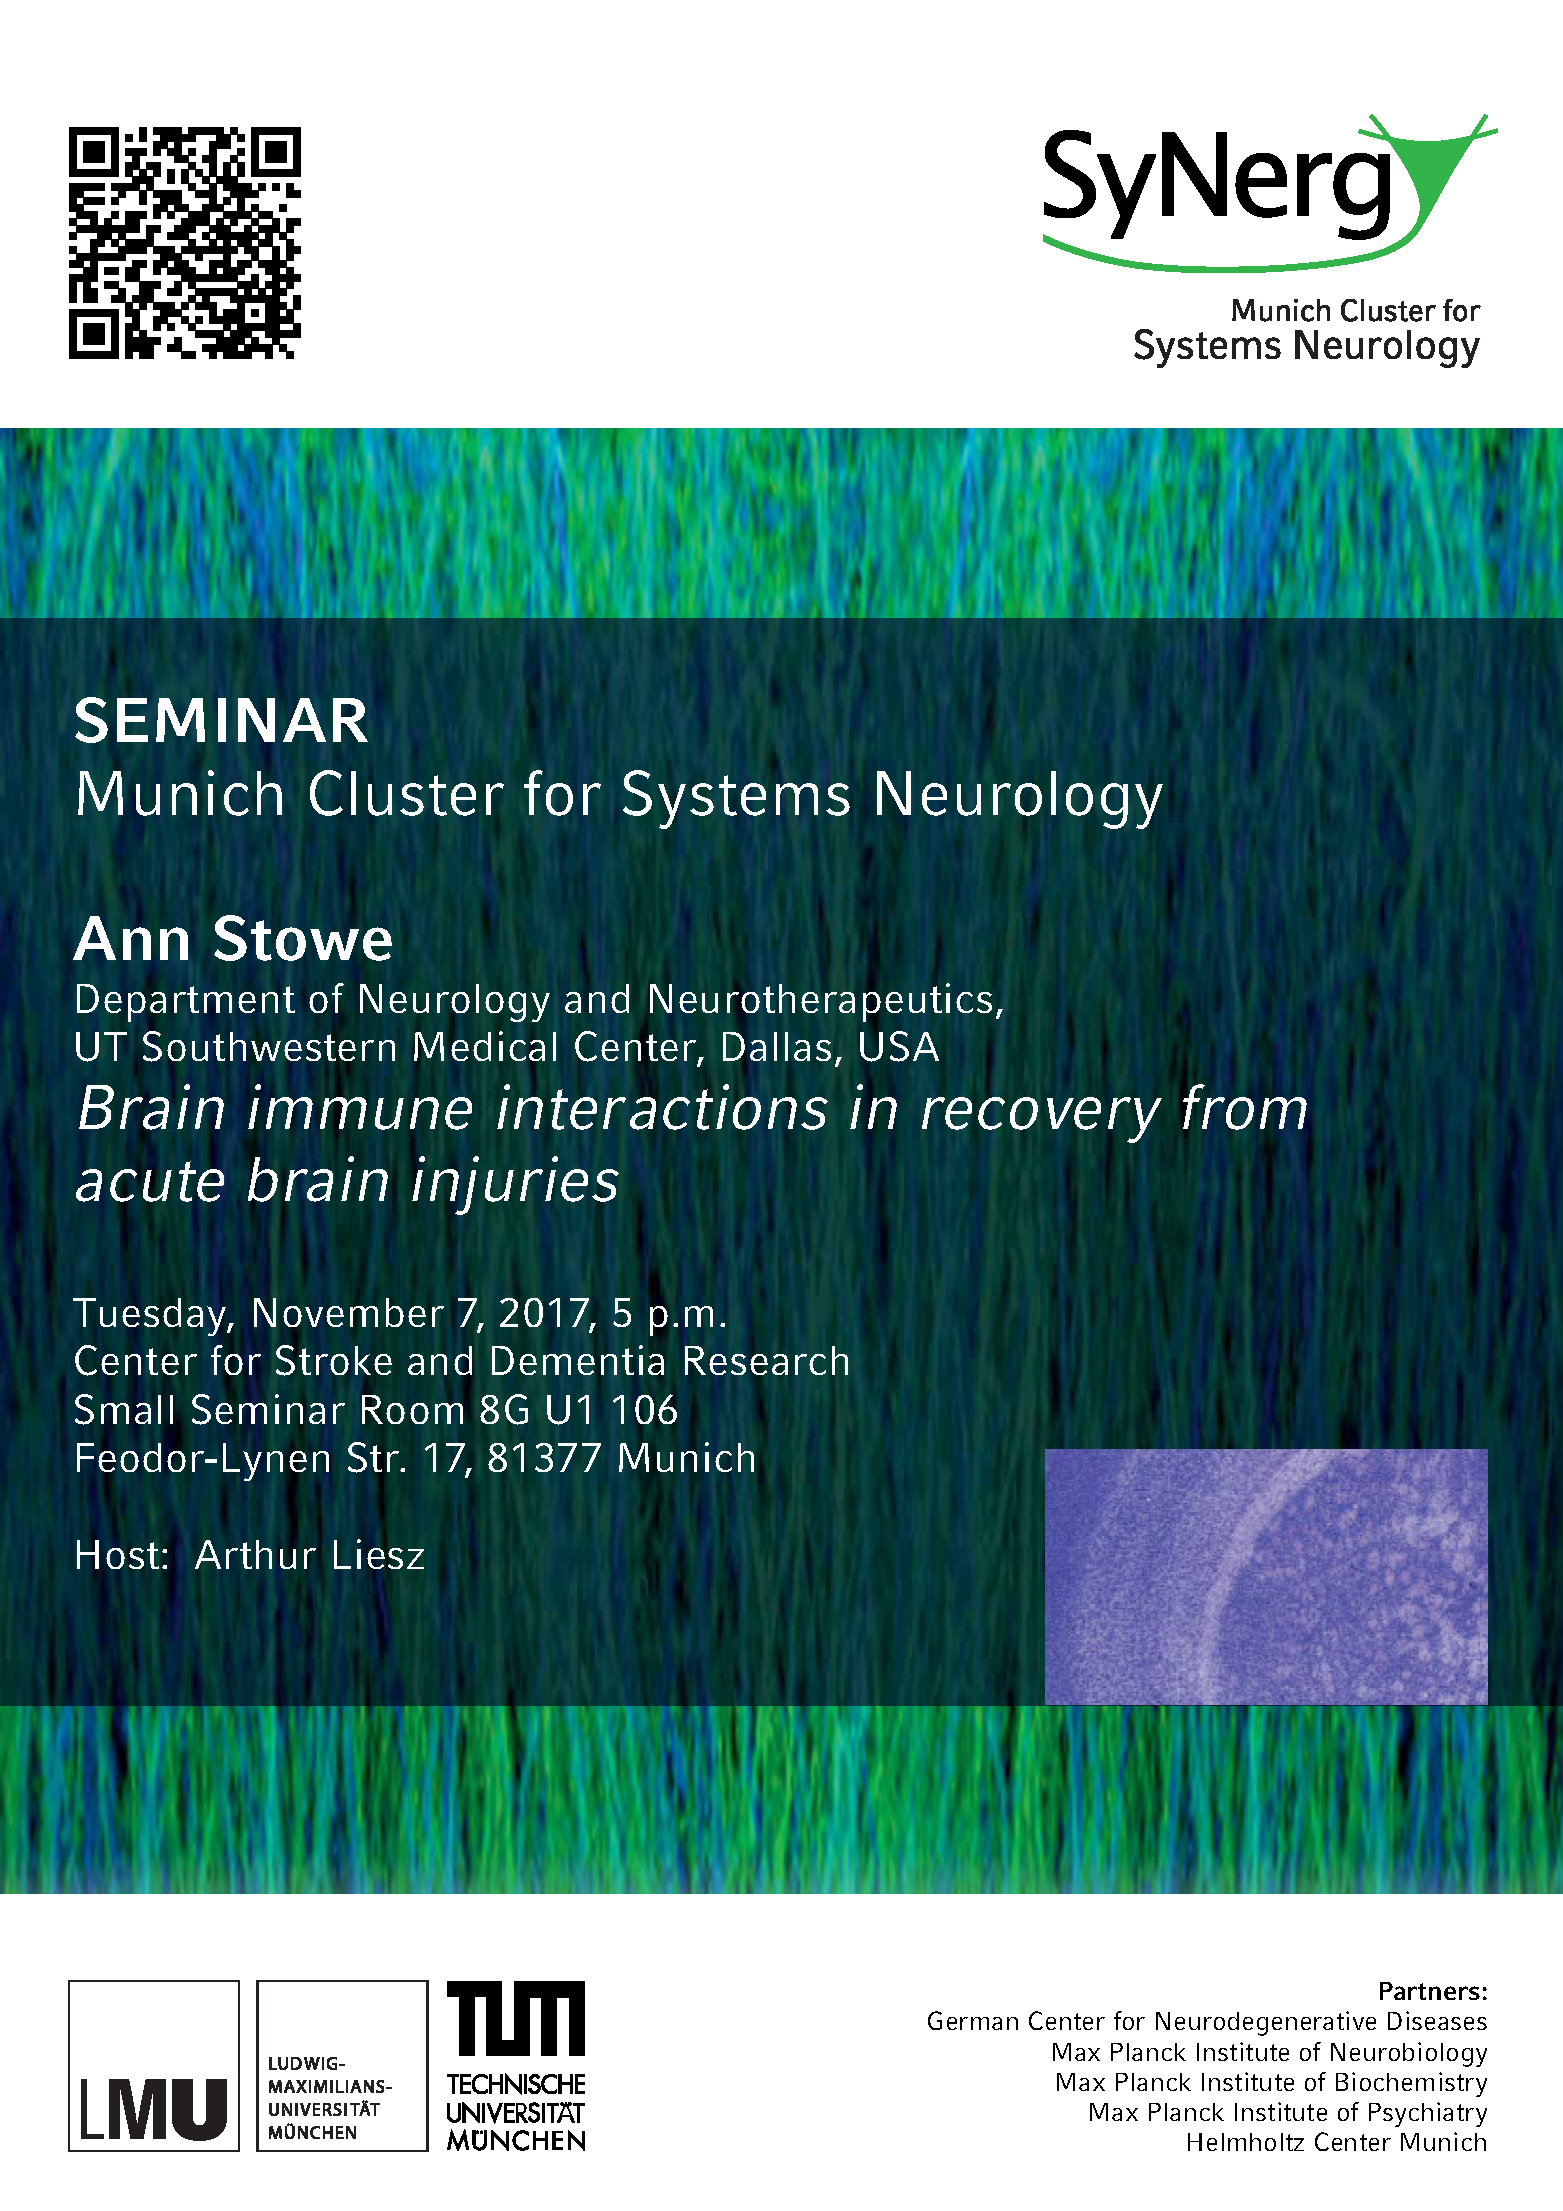 SyNergy Seminar: Ann Stowe - Munich Cluster for Systems